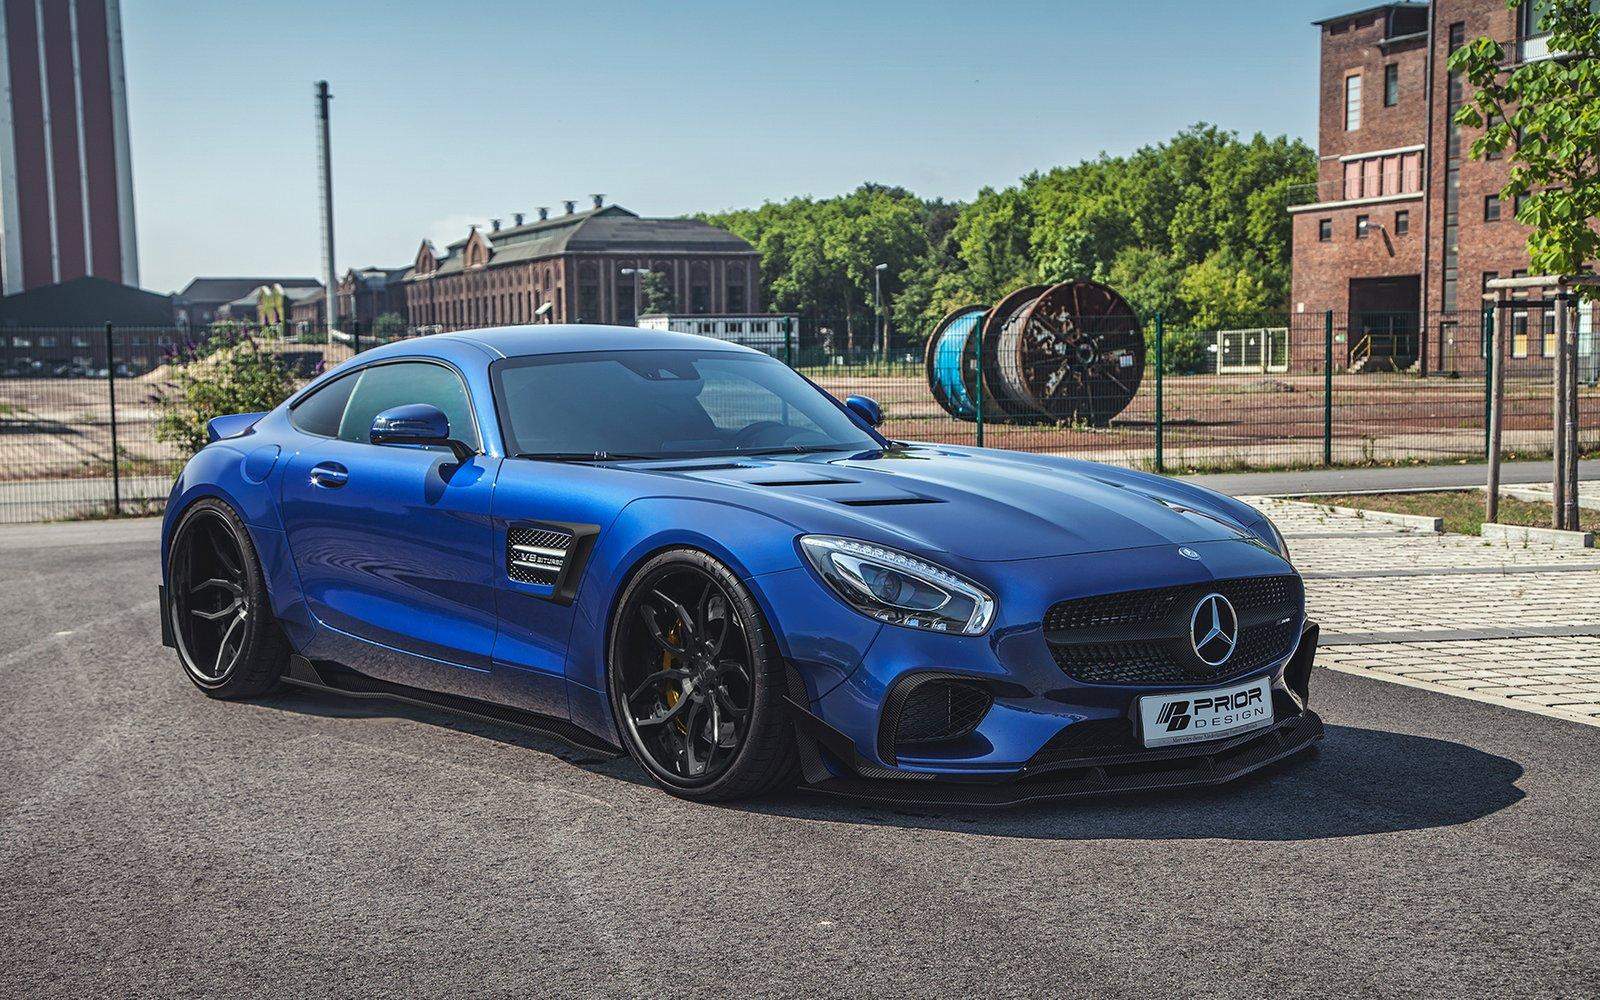 mercedes amg gt s m chamment m tamorphos e pas prior design les voitures. Black Bedroom Furniture Sets. Home Design Ideas